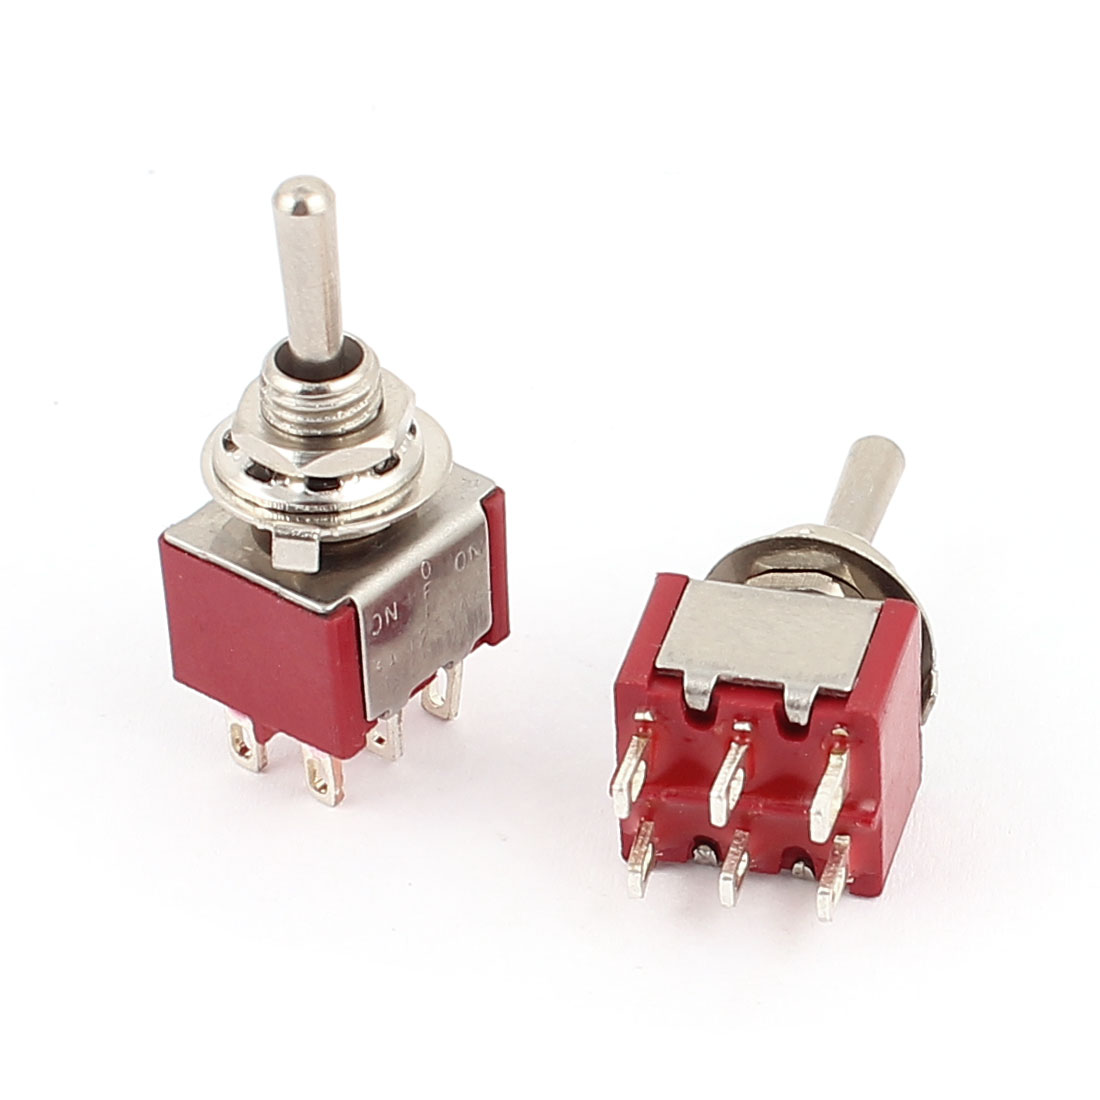 2 Pcs 250VAC 2A 125VAC 5A 6 Terminals DPDT 3 Position ON/OFF/ON Momentary Toggle Switch